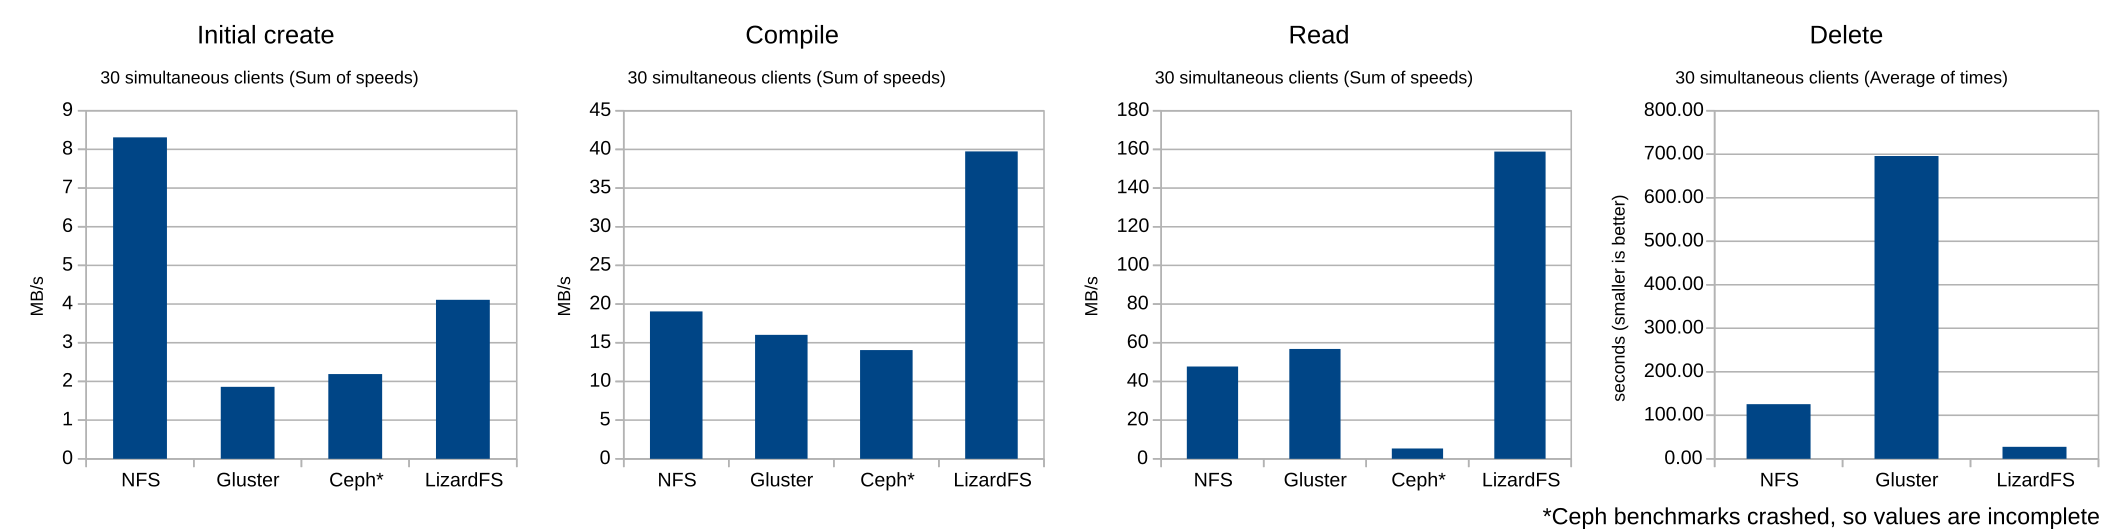 Benchmarking small file performance on distributed filesystems